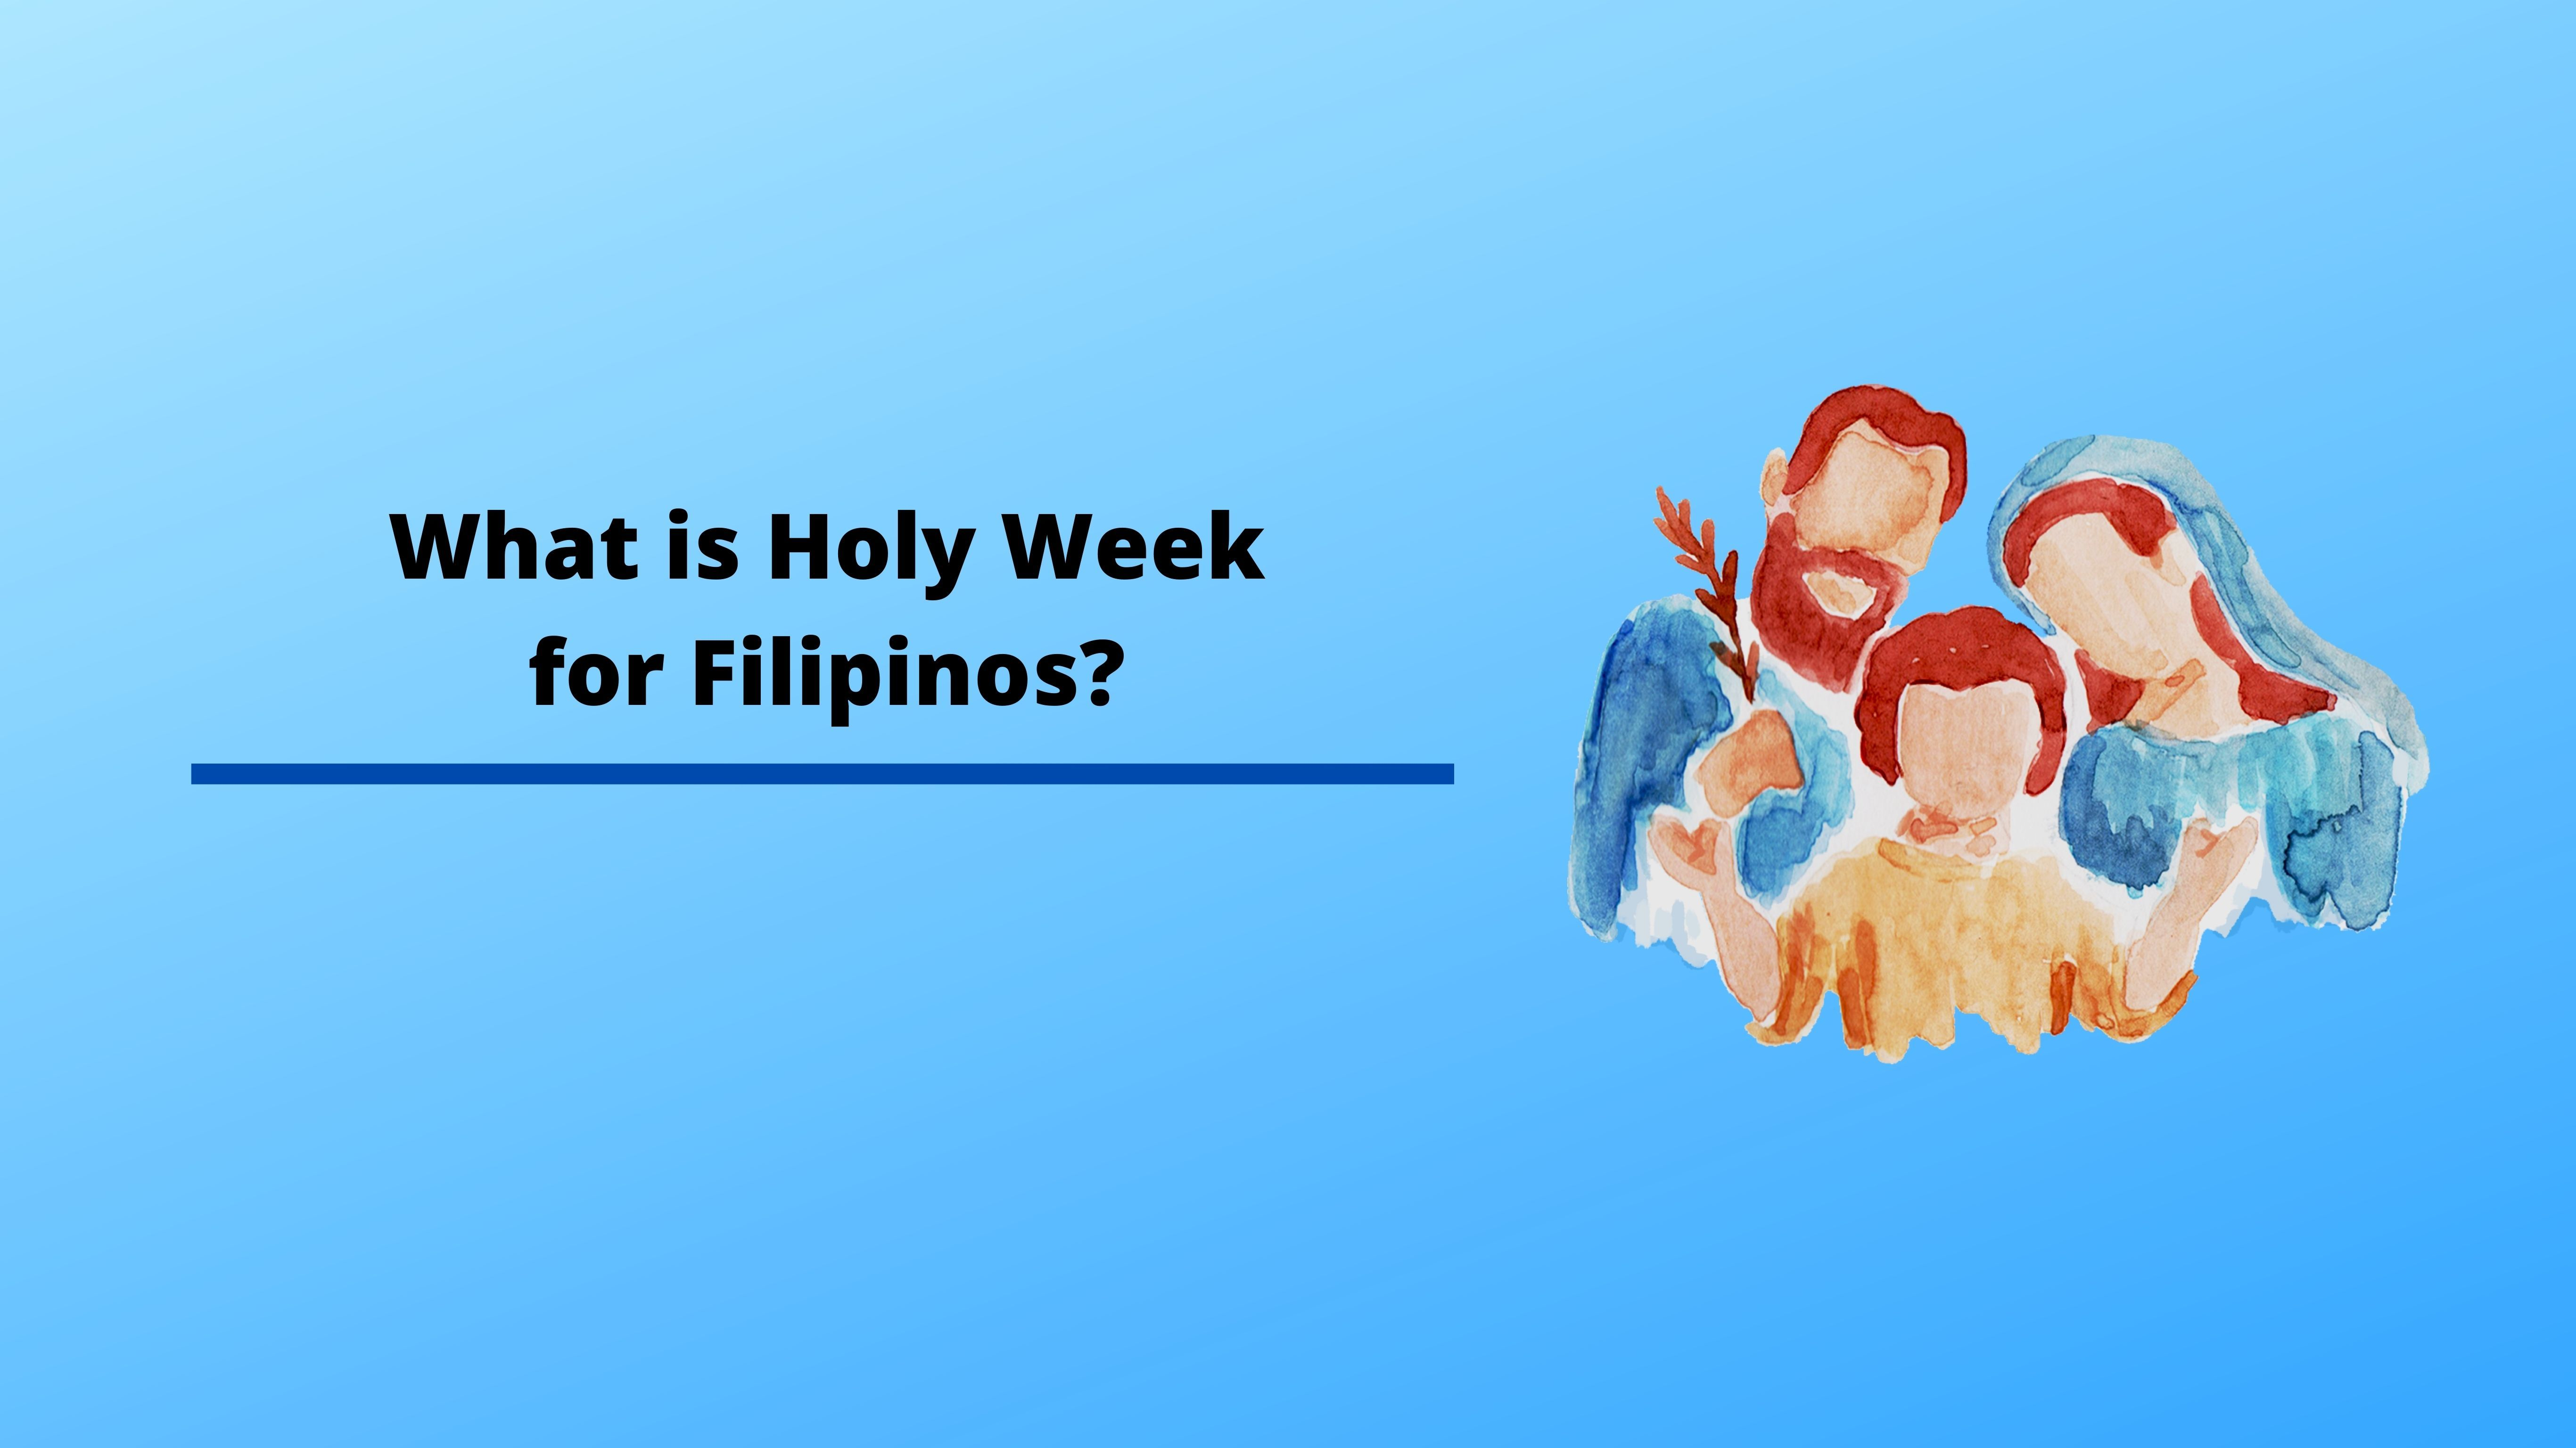 What is Holy Week for Filipinos?